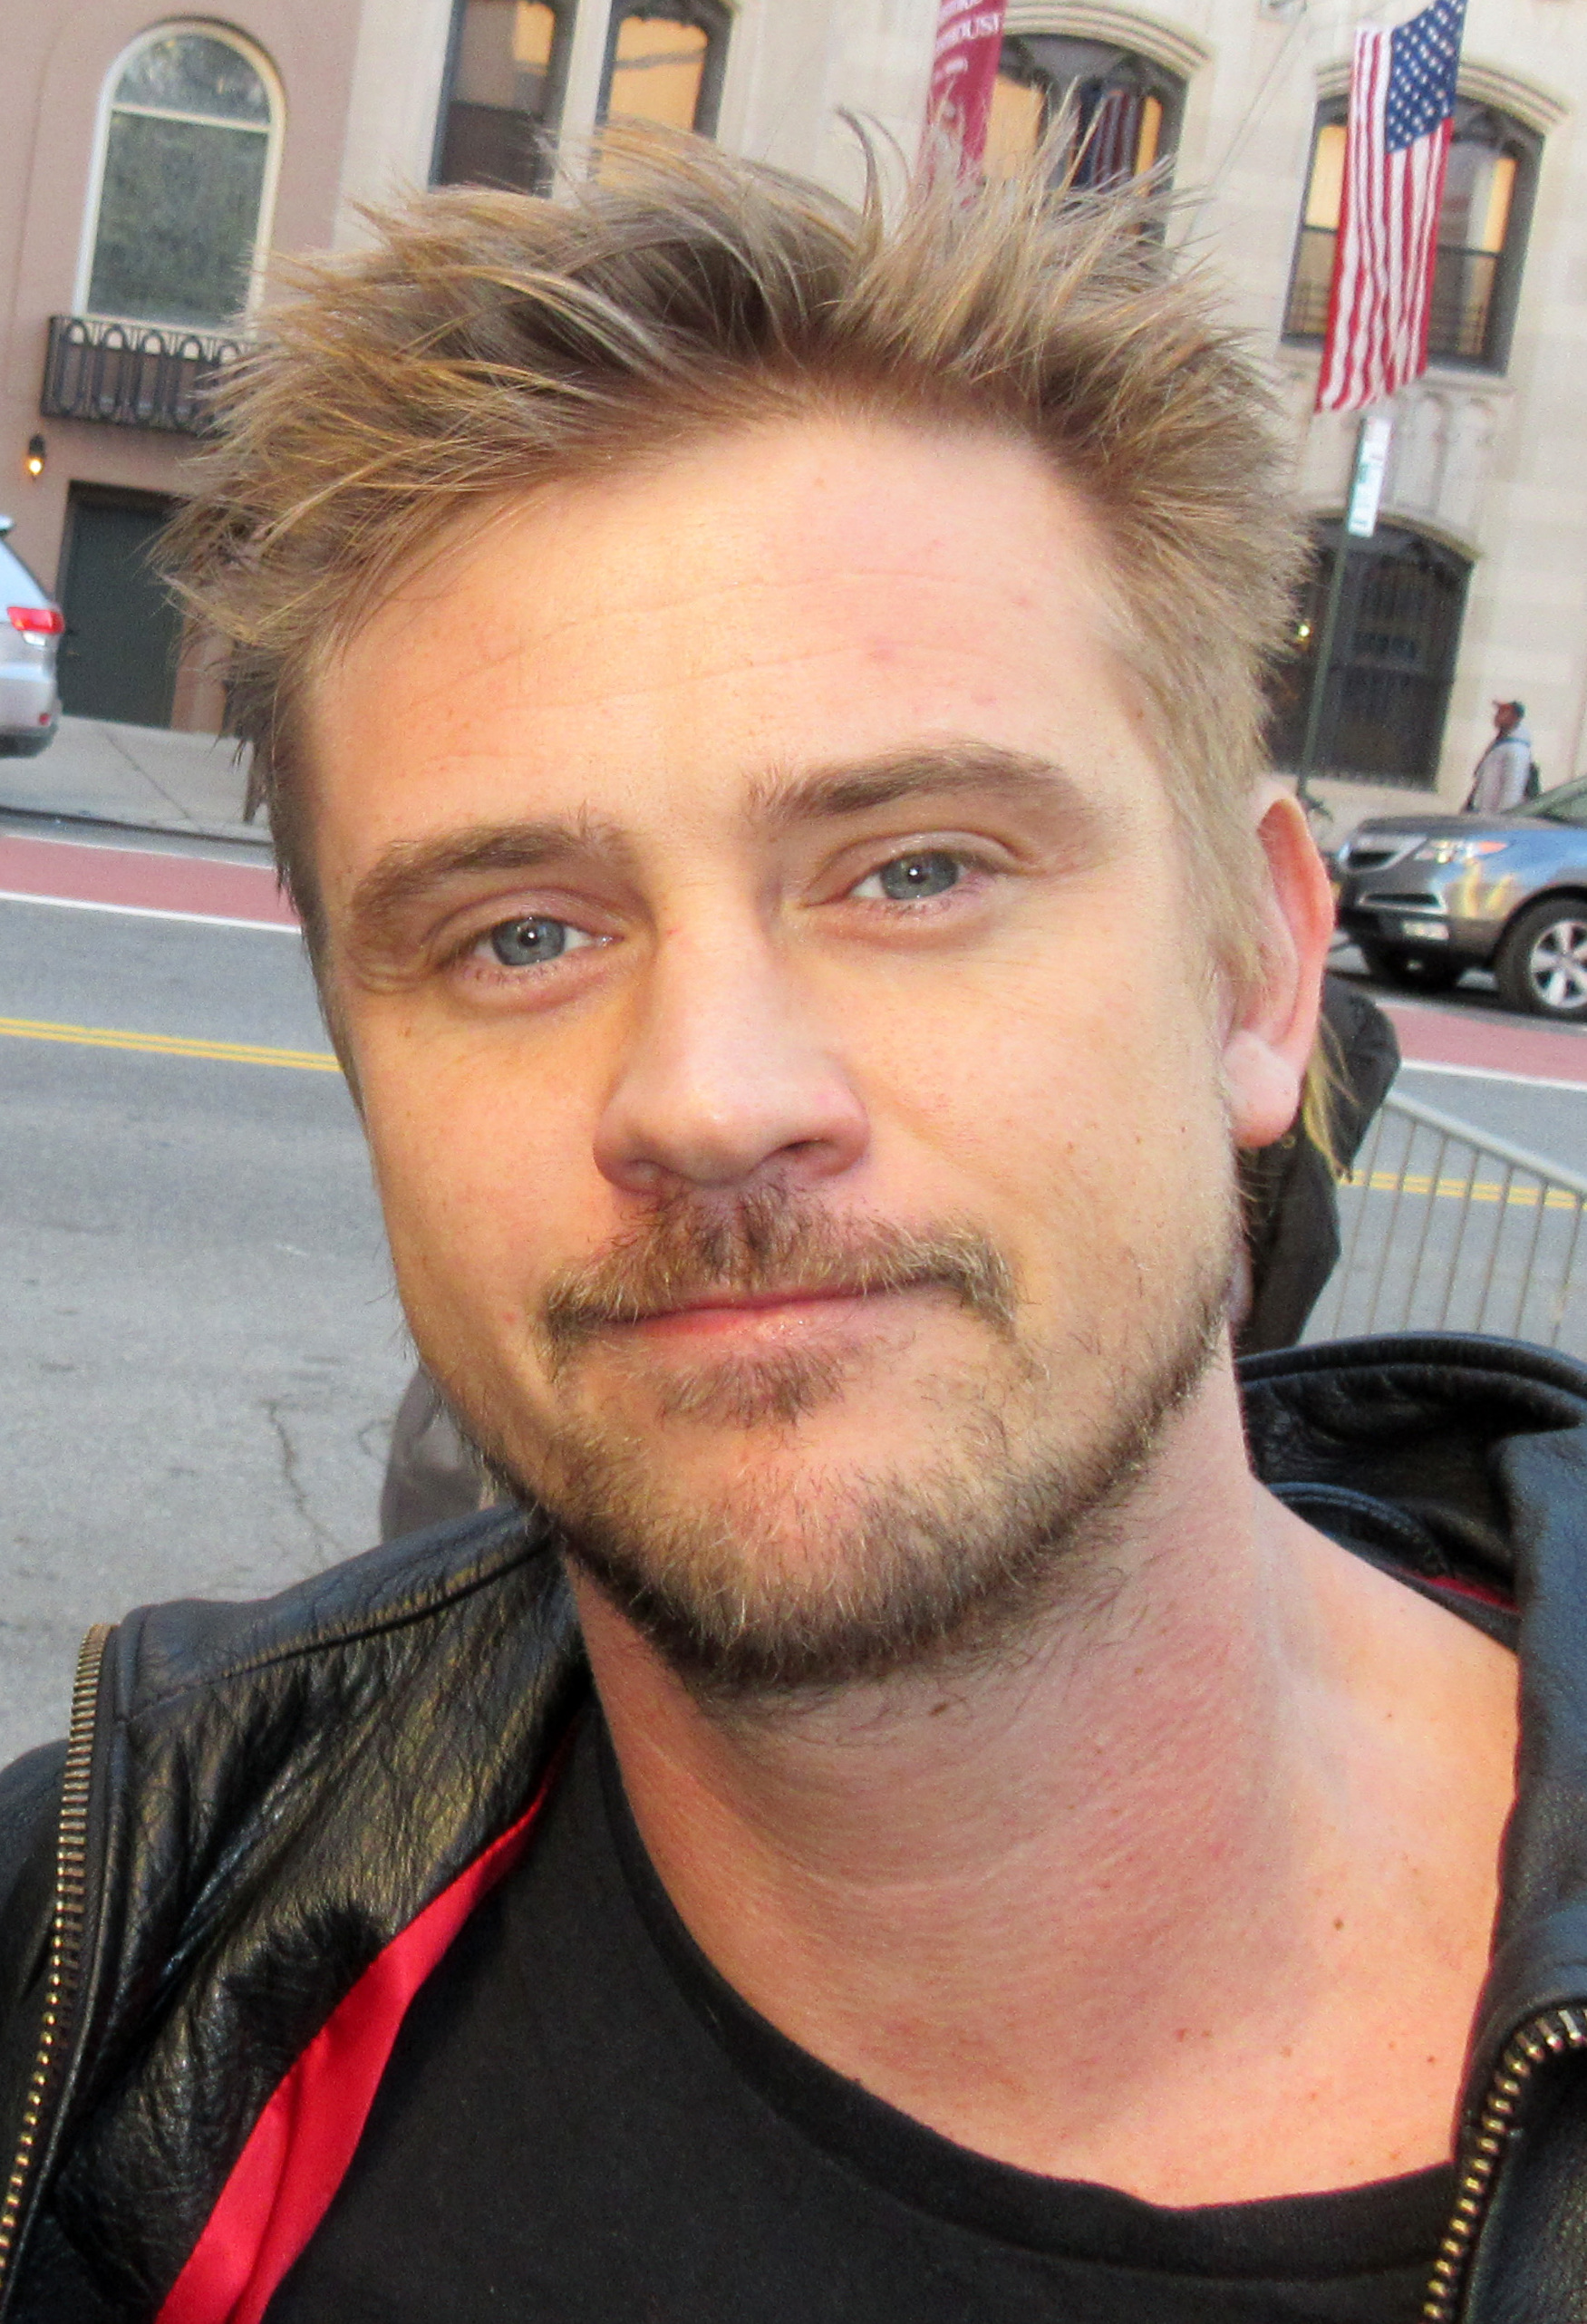 The 39-year old son of father Don Holbrook and mother Ellen Holbrook Boyd Holbrook in 2020 photo. Boyd Holbrook earned a million dollar salary - leaving the net worth at 7 million in 2020